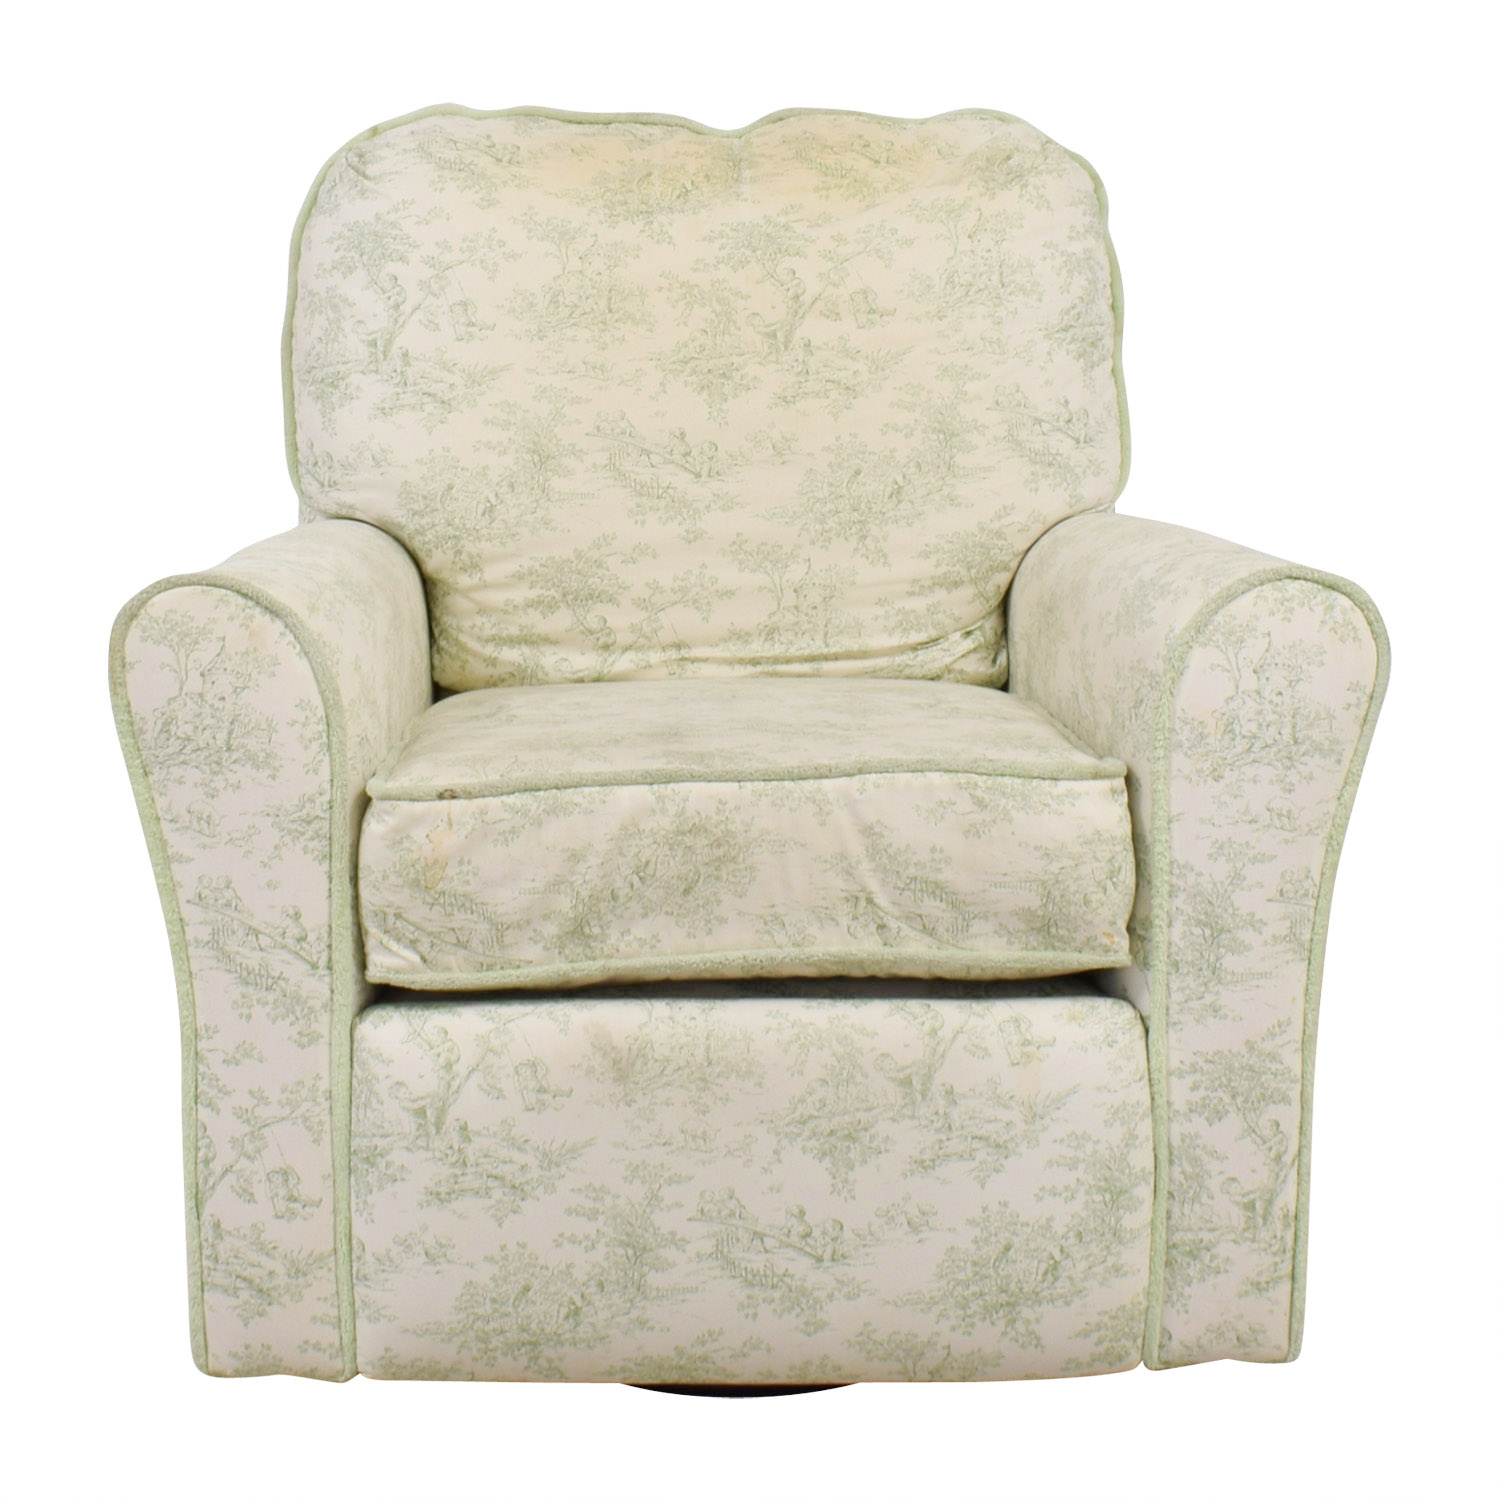 buy Bellini Baby Bellini Baby Children's Playground White and Green Rocking Chair Recliner online